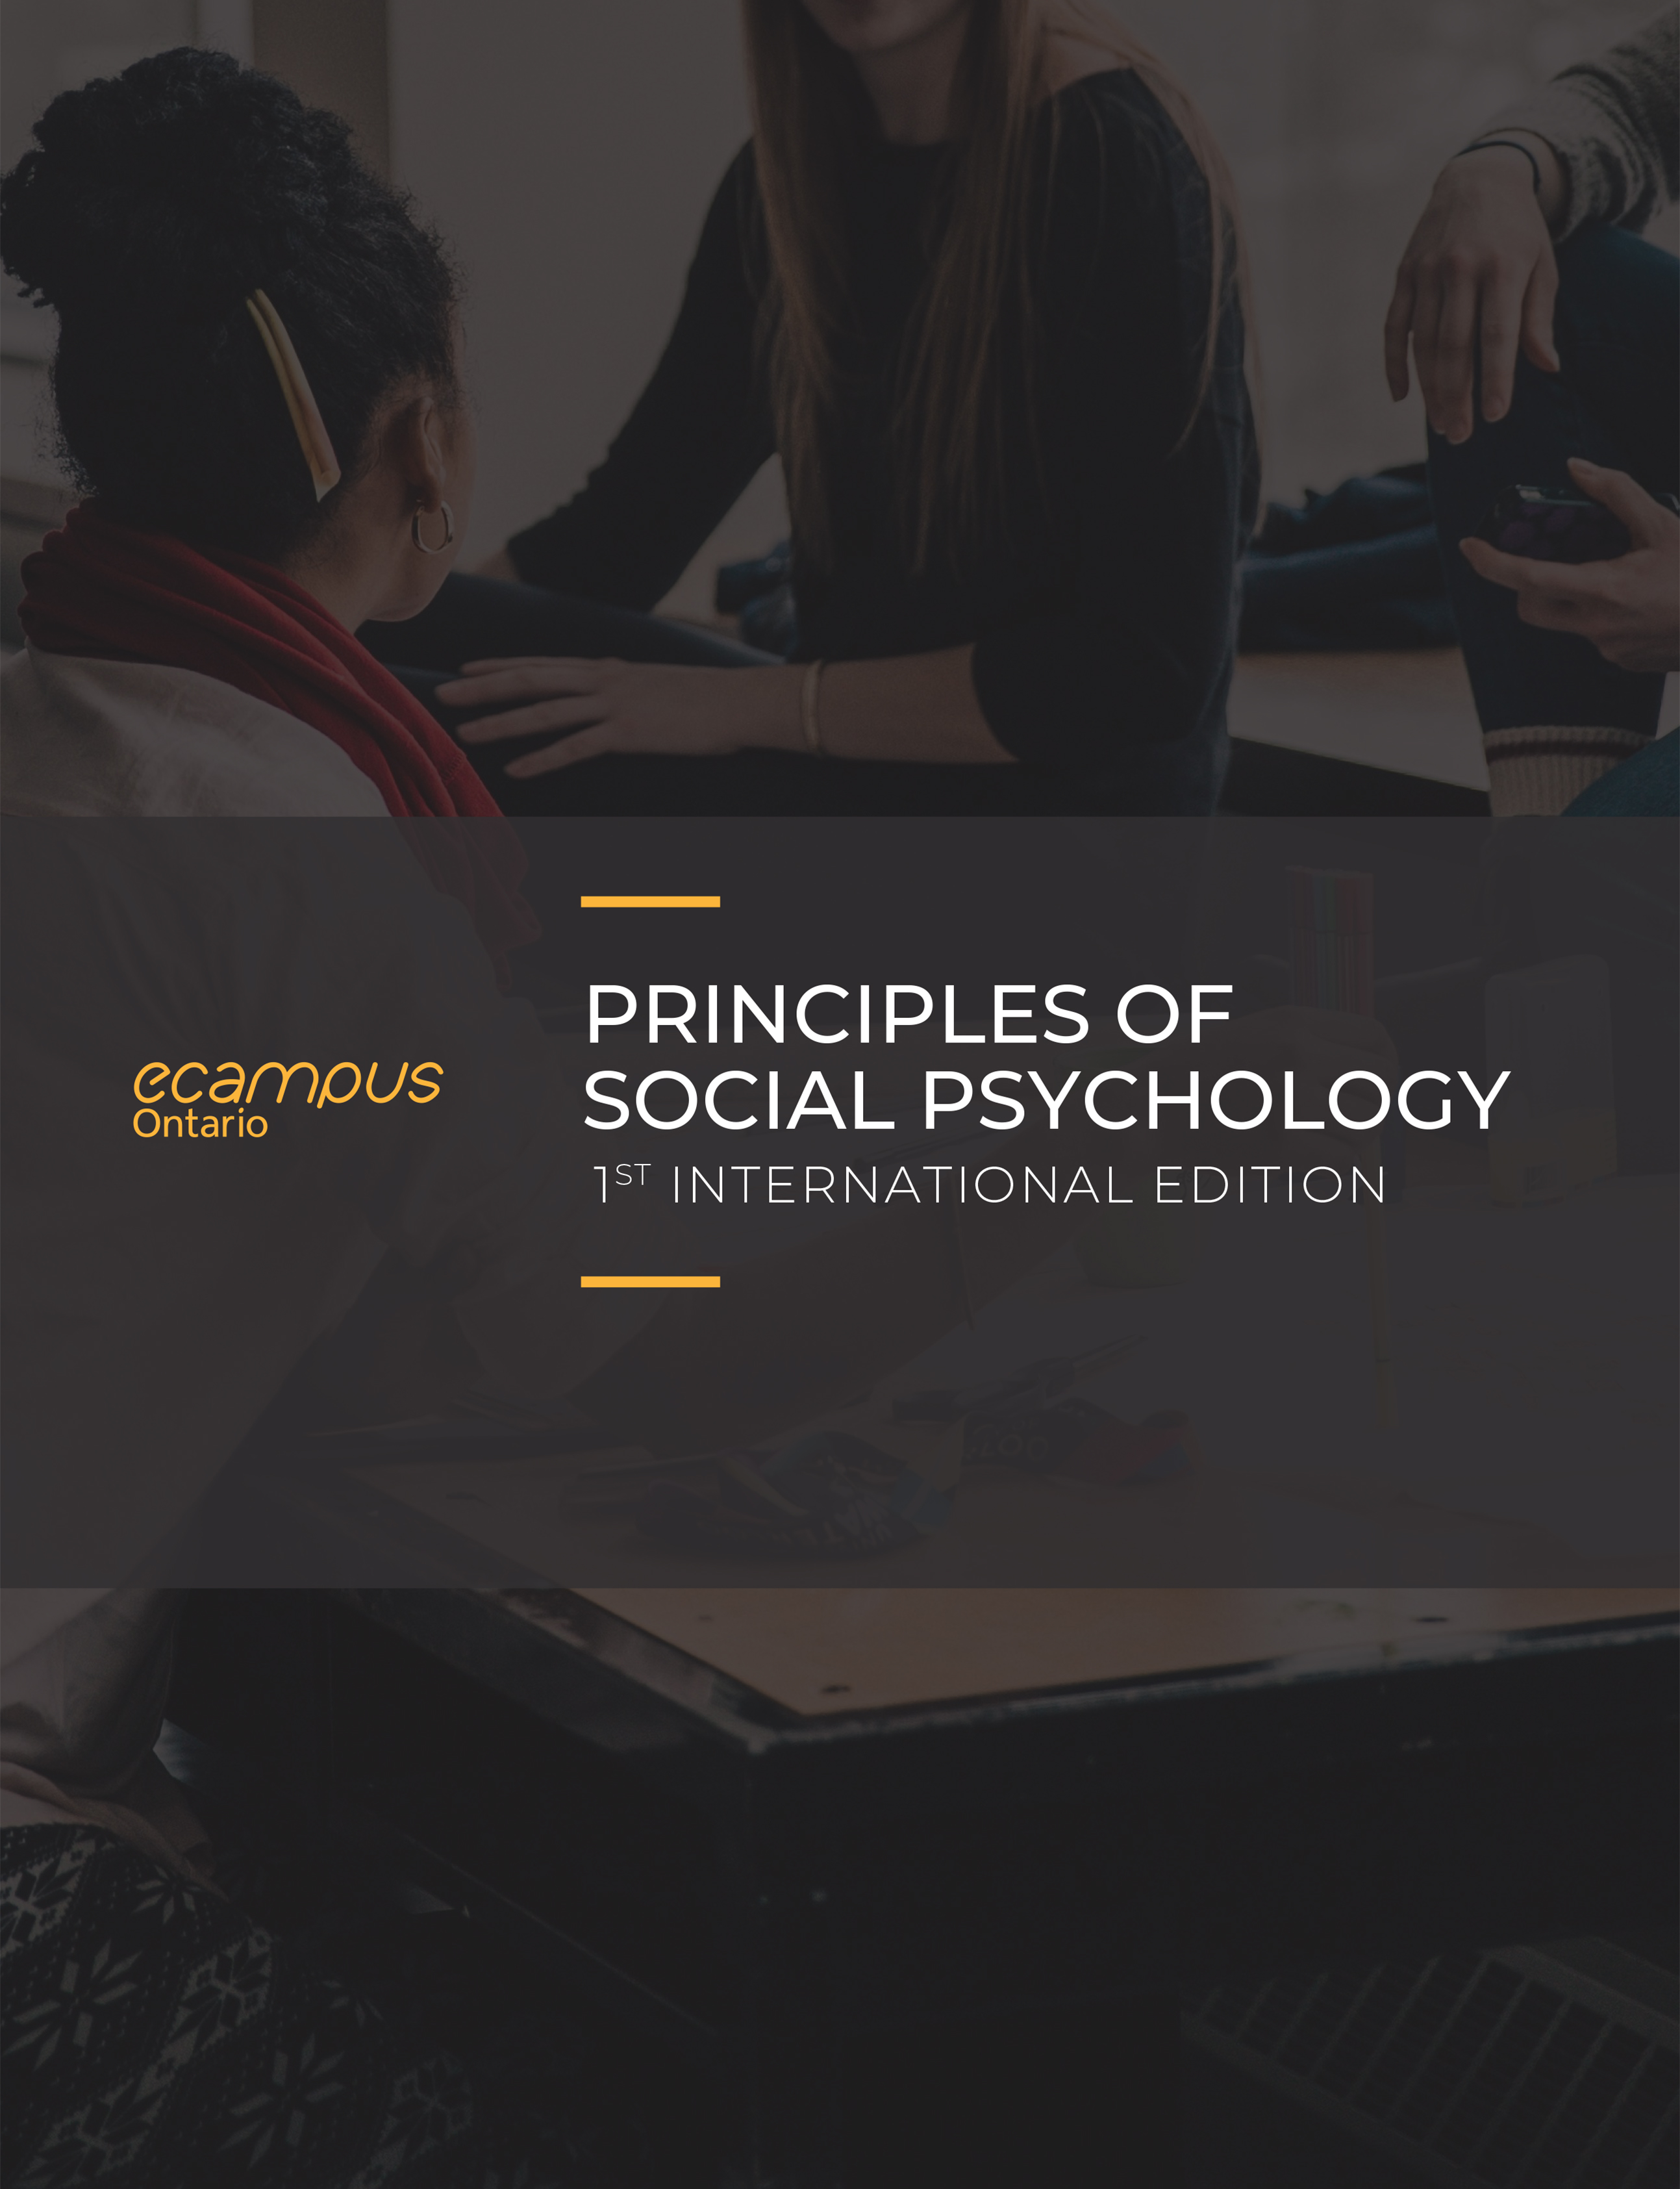 Cover image for Principles of Social Psychology - 1st International Edition